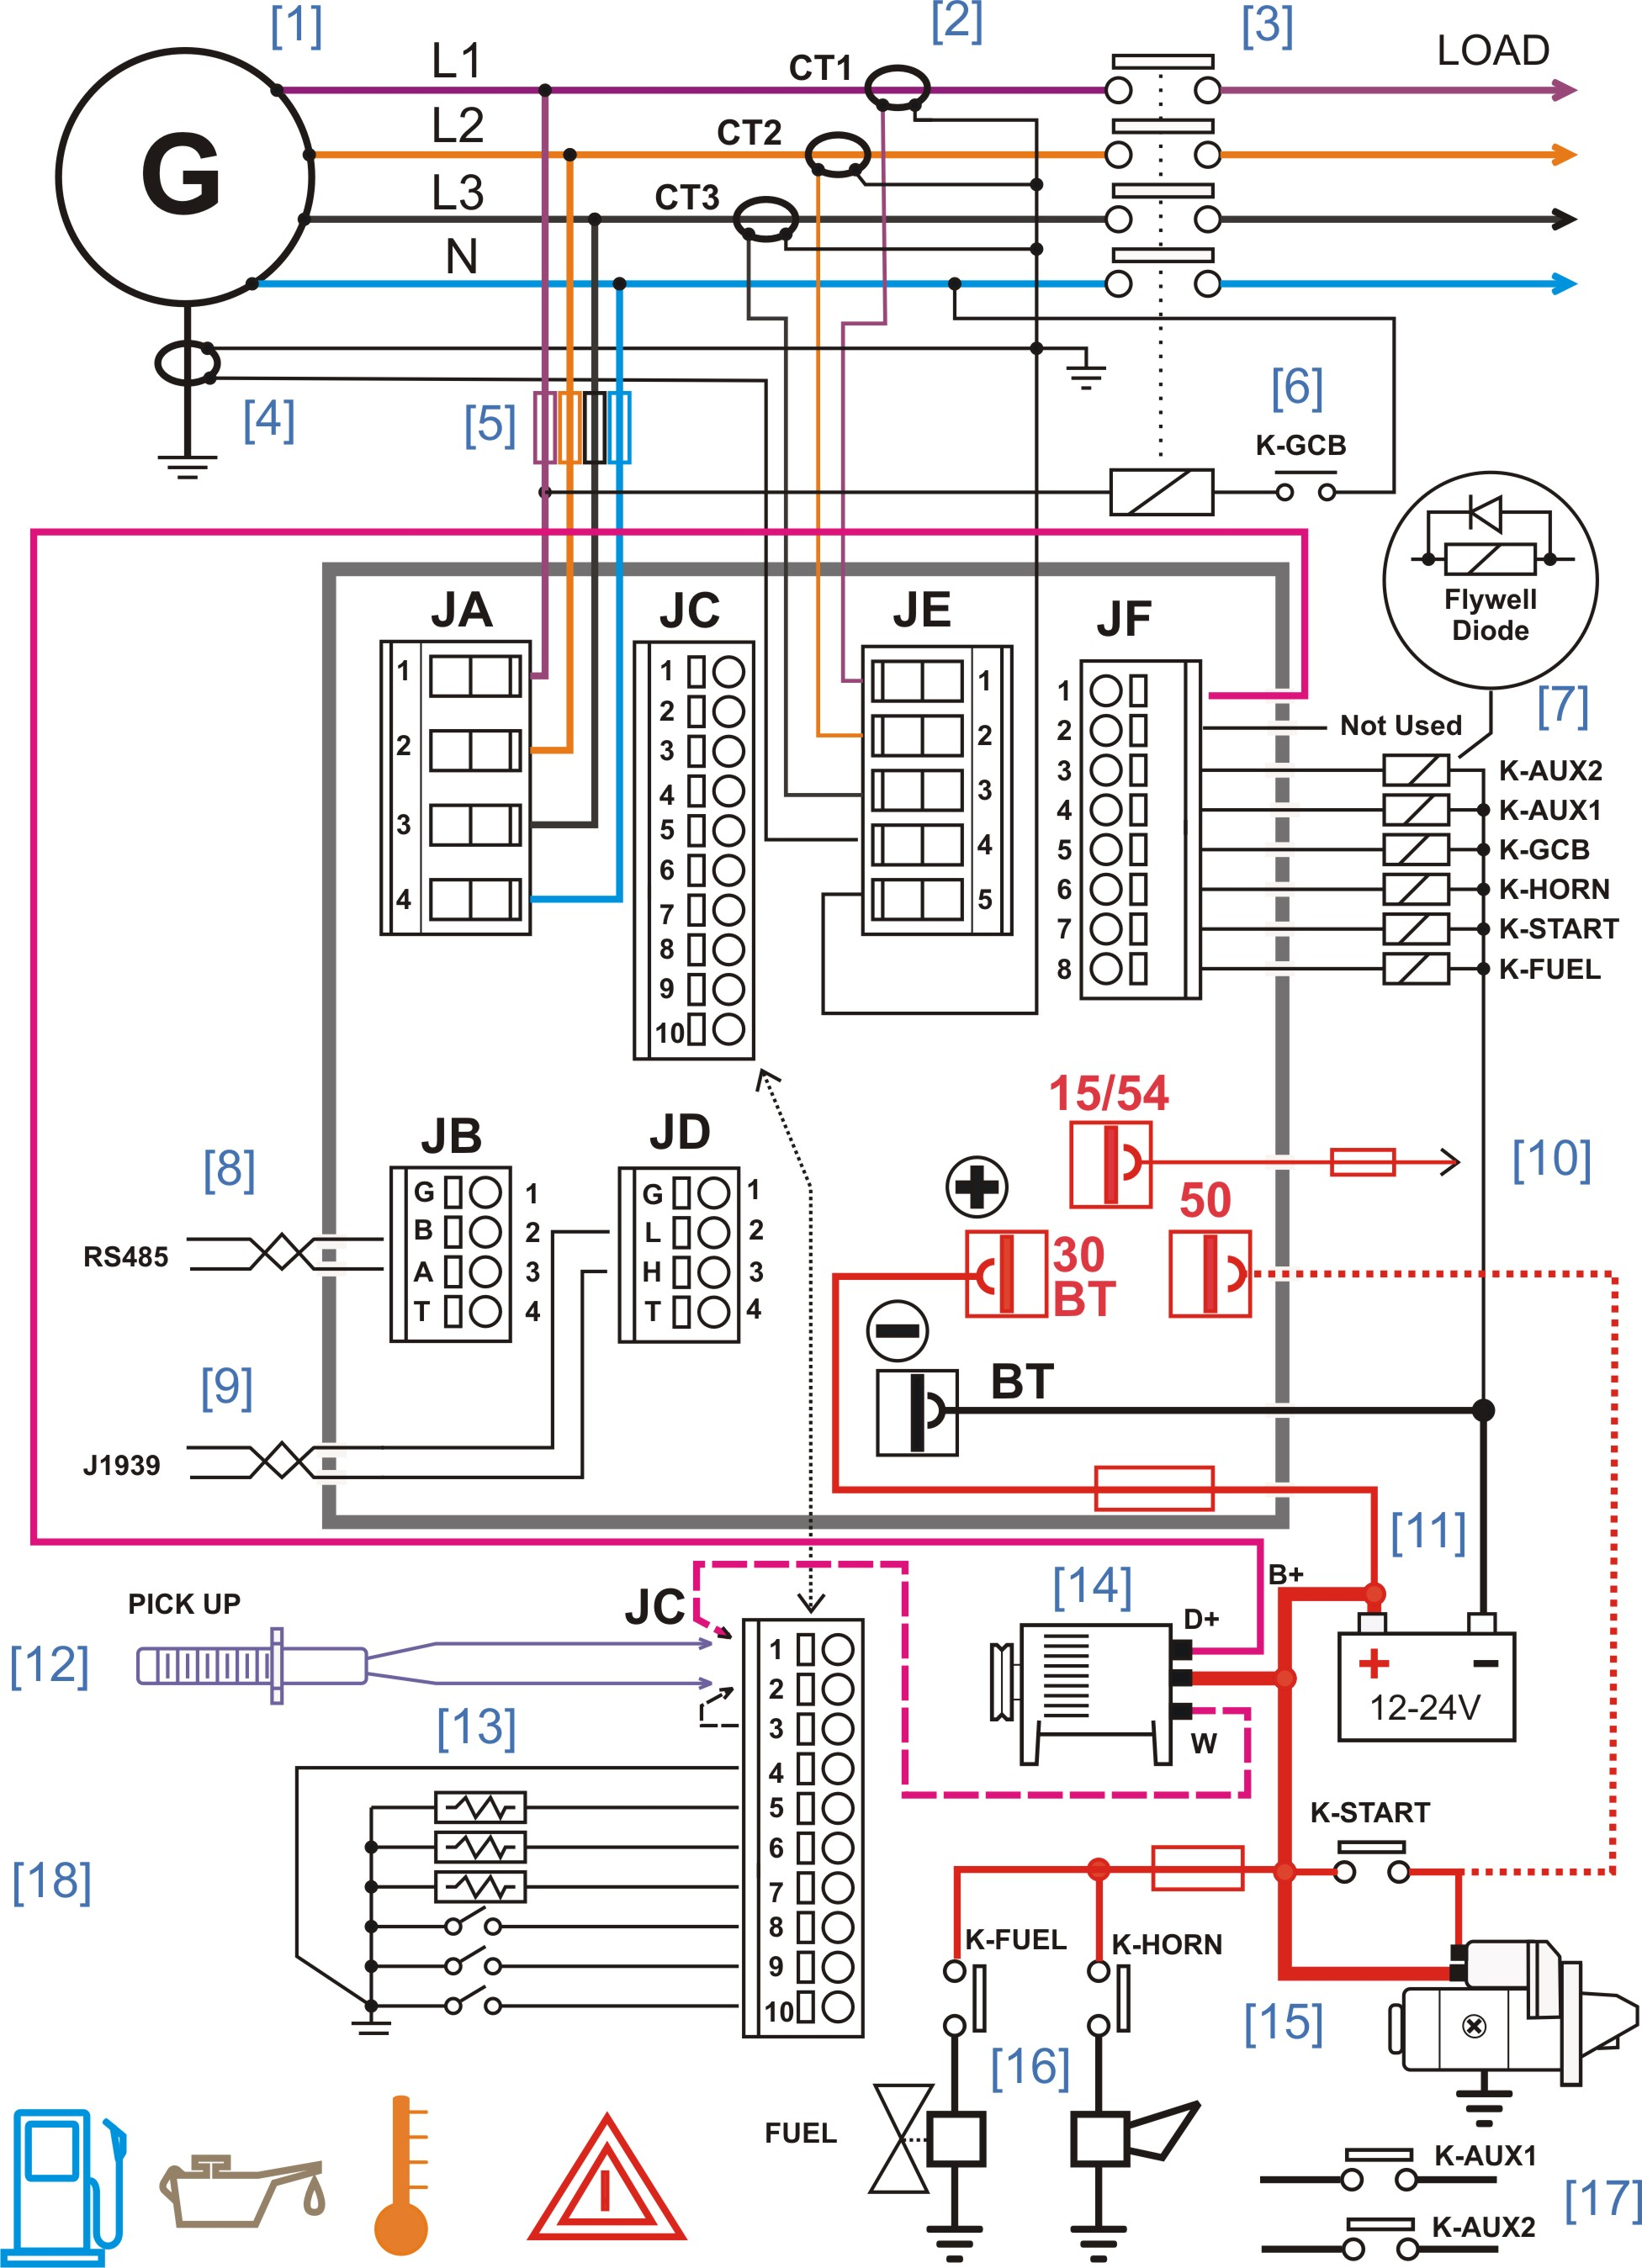 Circuit Diagram Generator Avr On Circuit Images Free Download